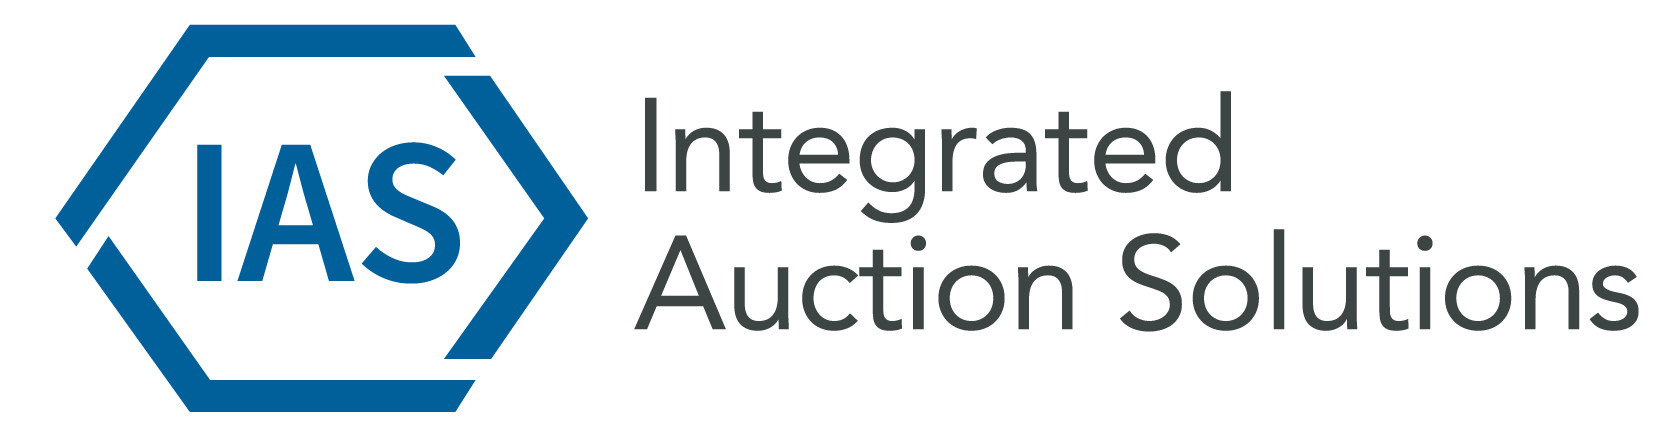 Integrated Auction Solutions logo